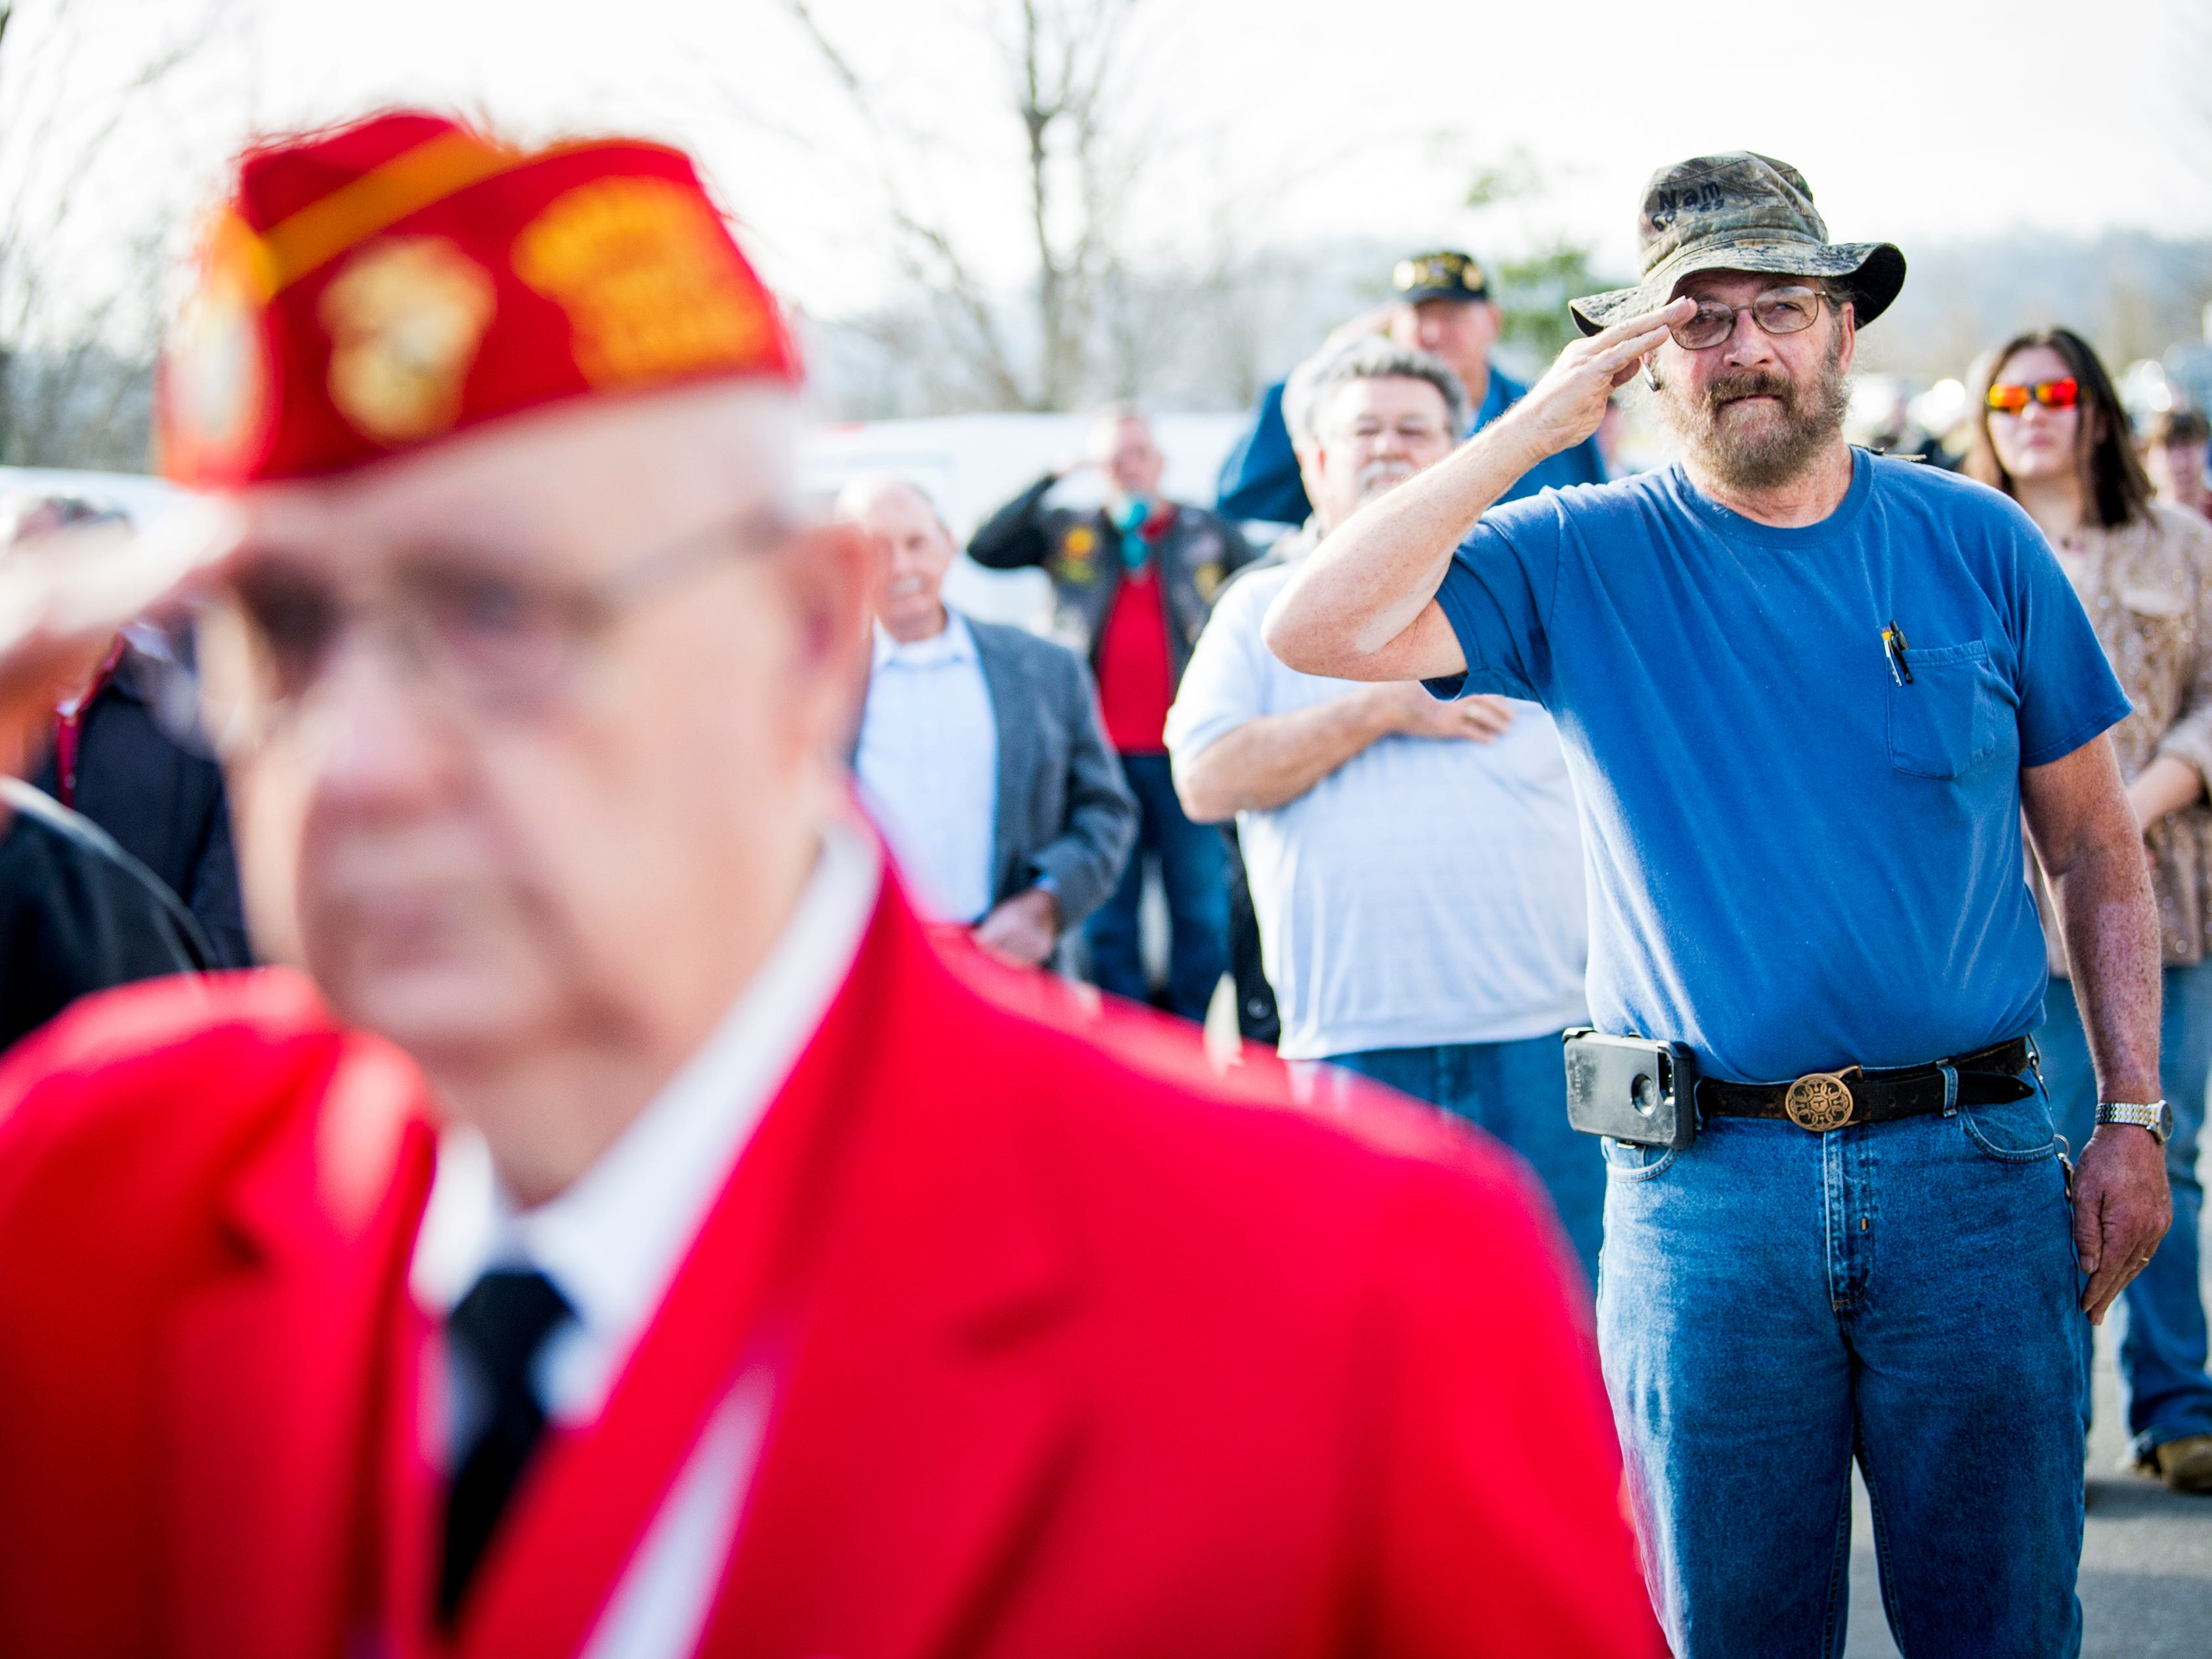 Veterans salute as Taps is played during a military memorial service for seven East Tennessee veterans held at the East Tennessee Veterans Cemetery on Gov. John Sevier Highway on Tuesday, February 5, 2019.